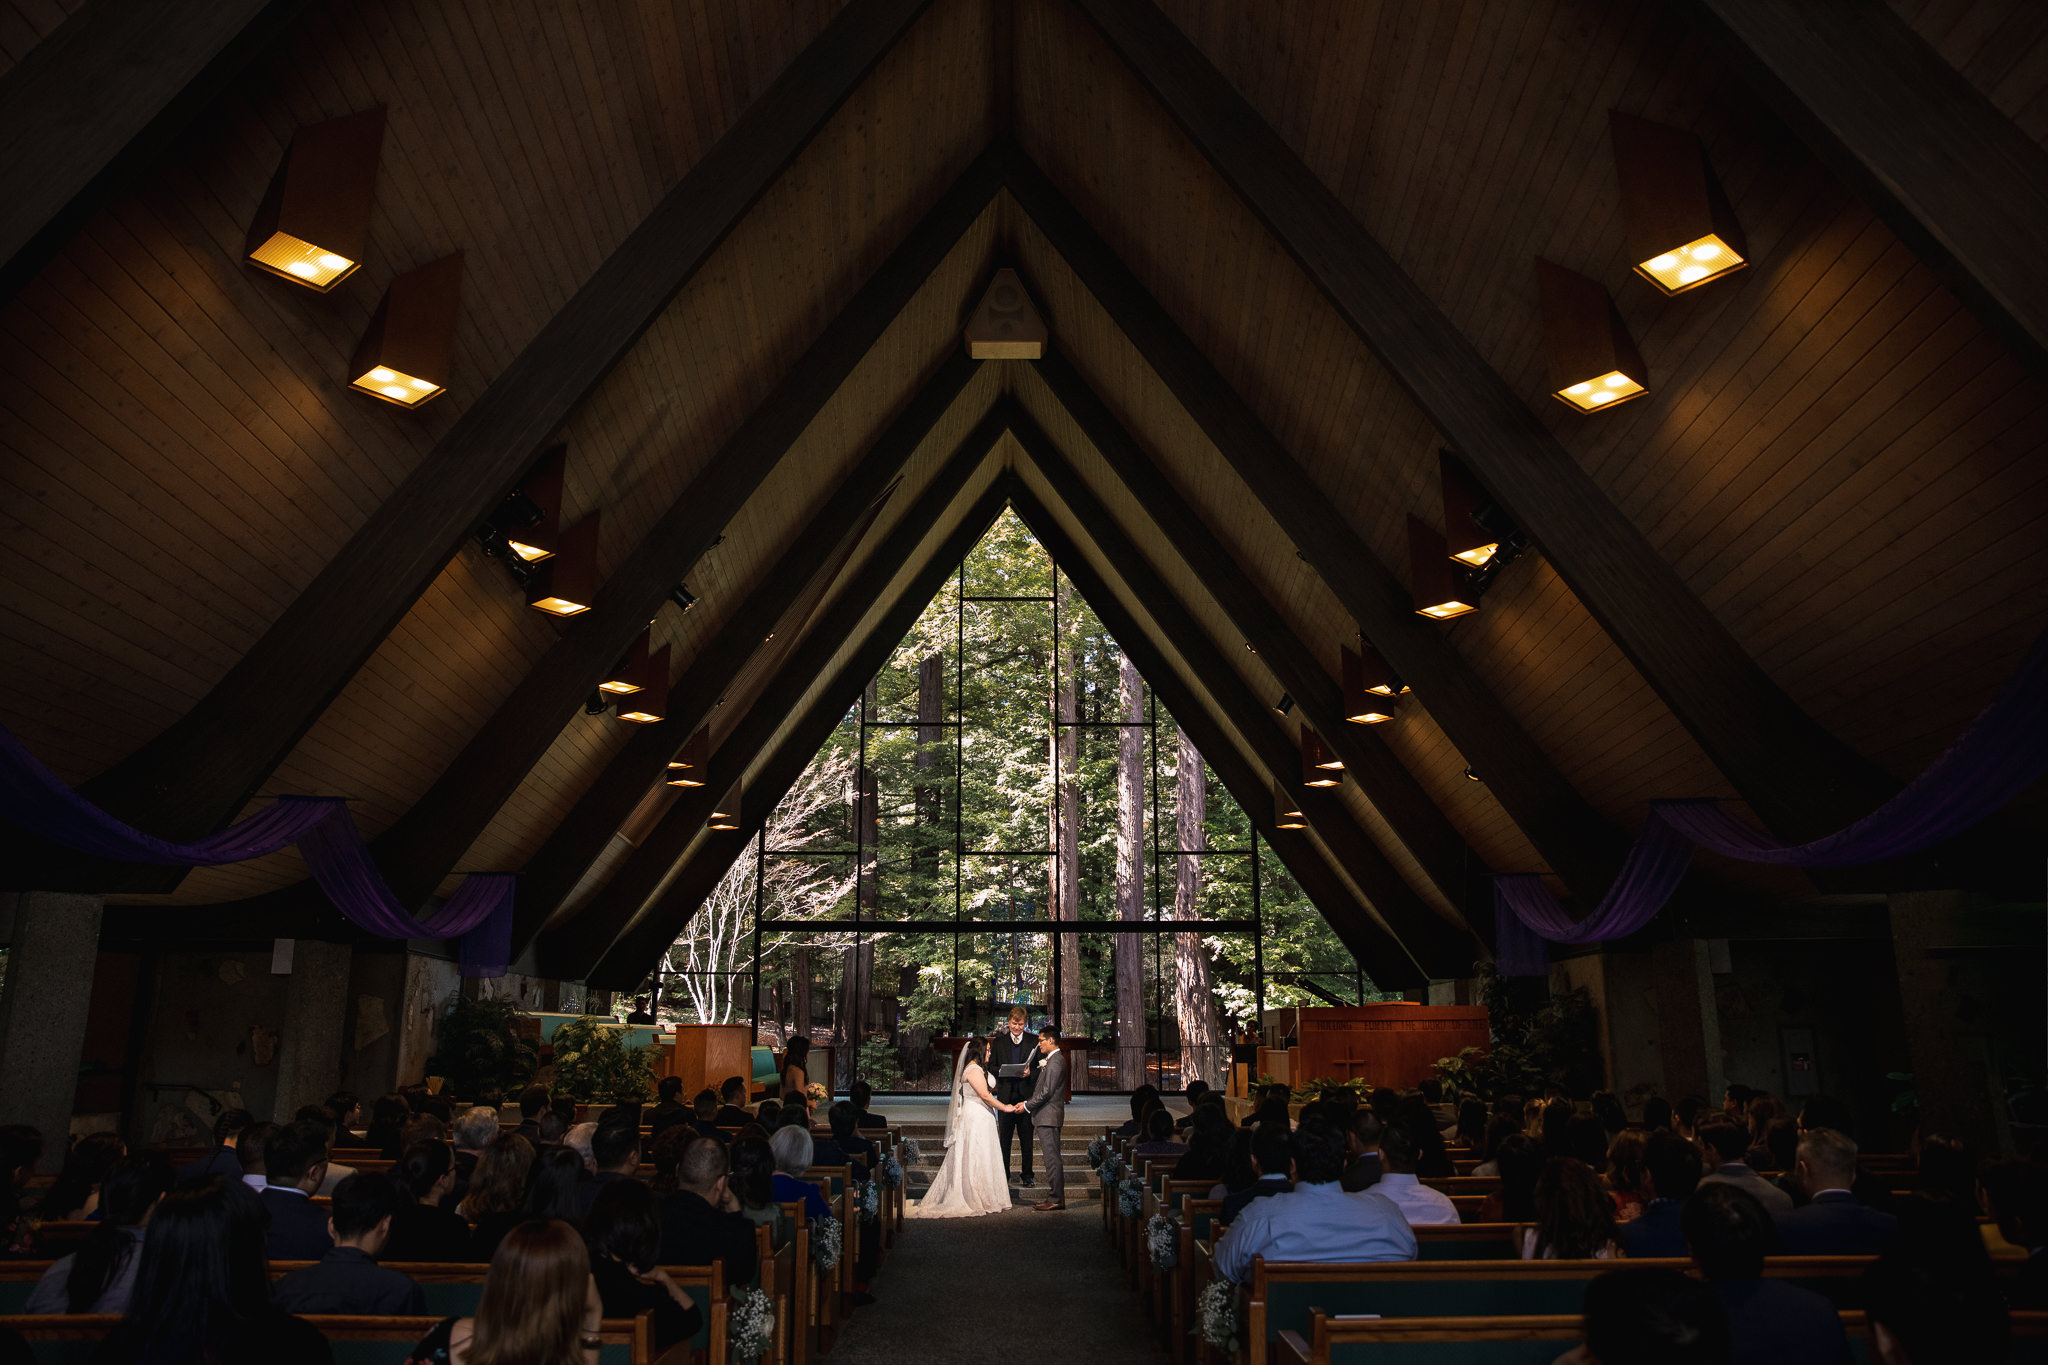 The Valley Presbyterian Church in Portola, California, features a unique rooftop structure and a forest backdrop. It's hard not to enjoy nature when attending wedding ceremonies here.